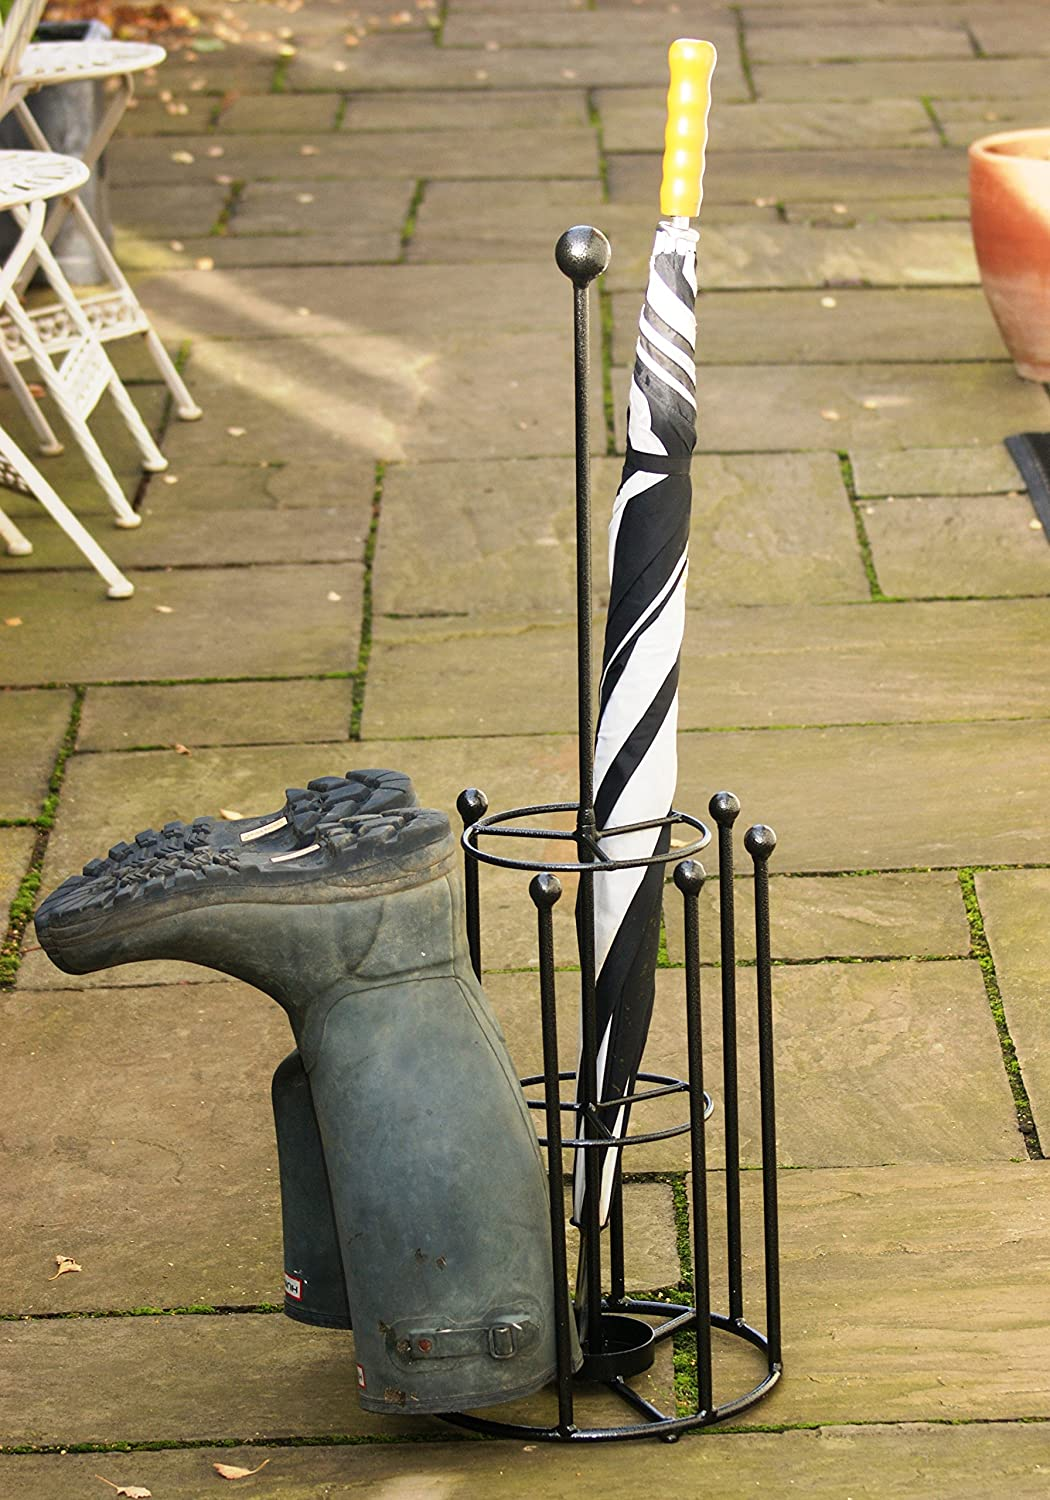 4 Pair boot and Umbrella stand Gap Garden Products Ltd